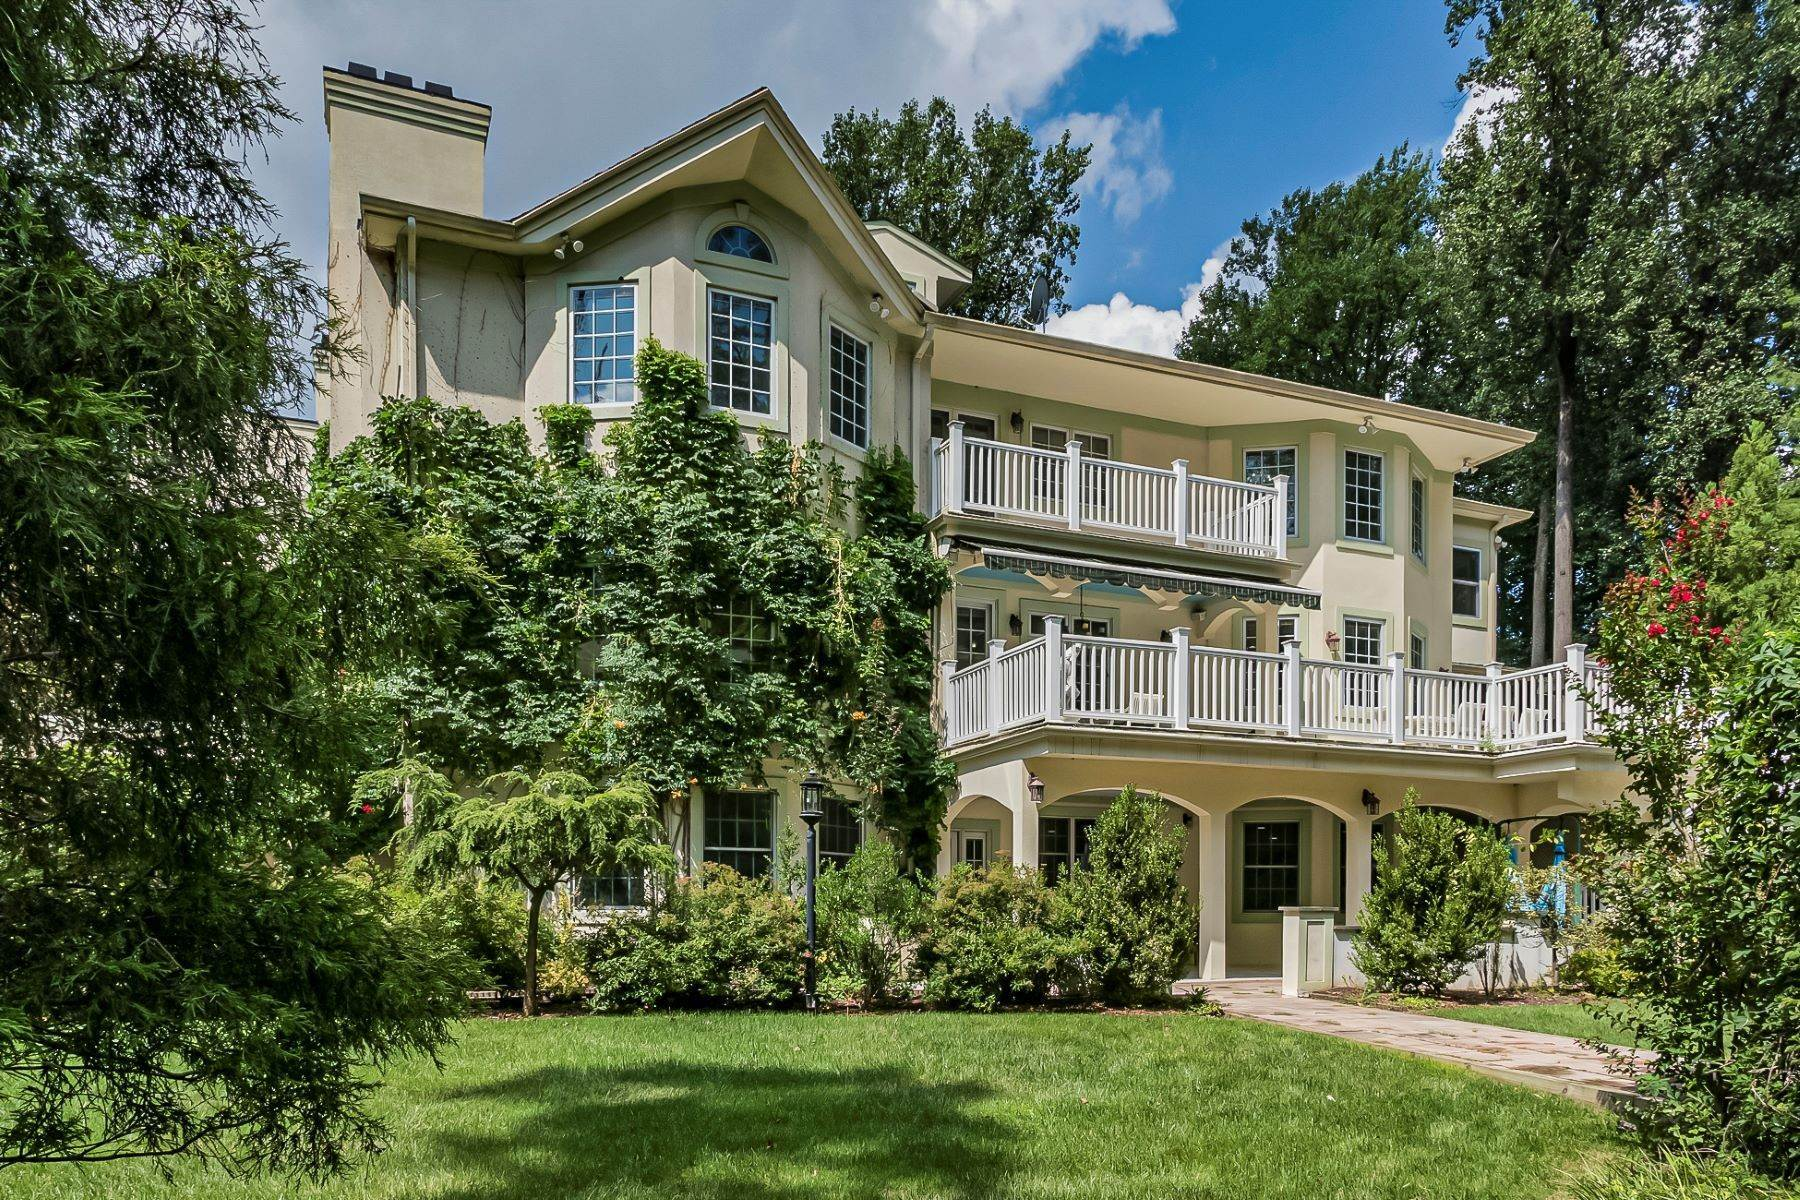 Single Family Homes for Sale at A Sprawling Showplace Where East Meets West 76 Pettit Place, Princeton, New Jersey 08540 United States